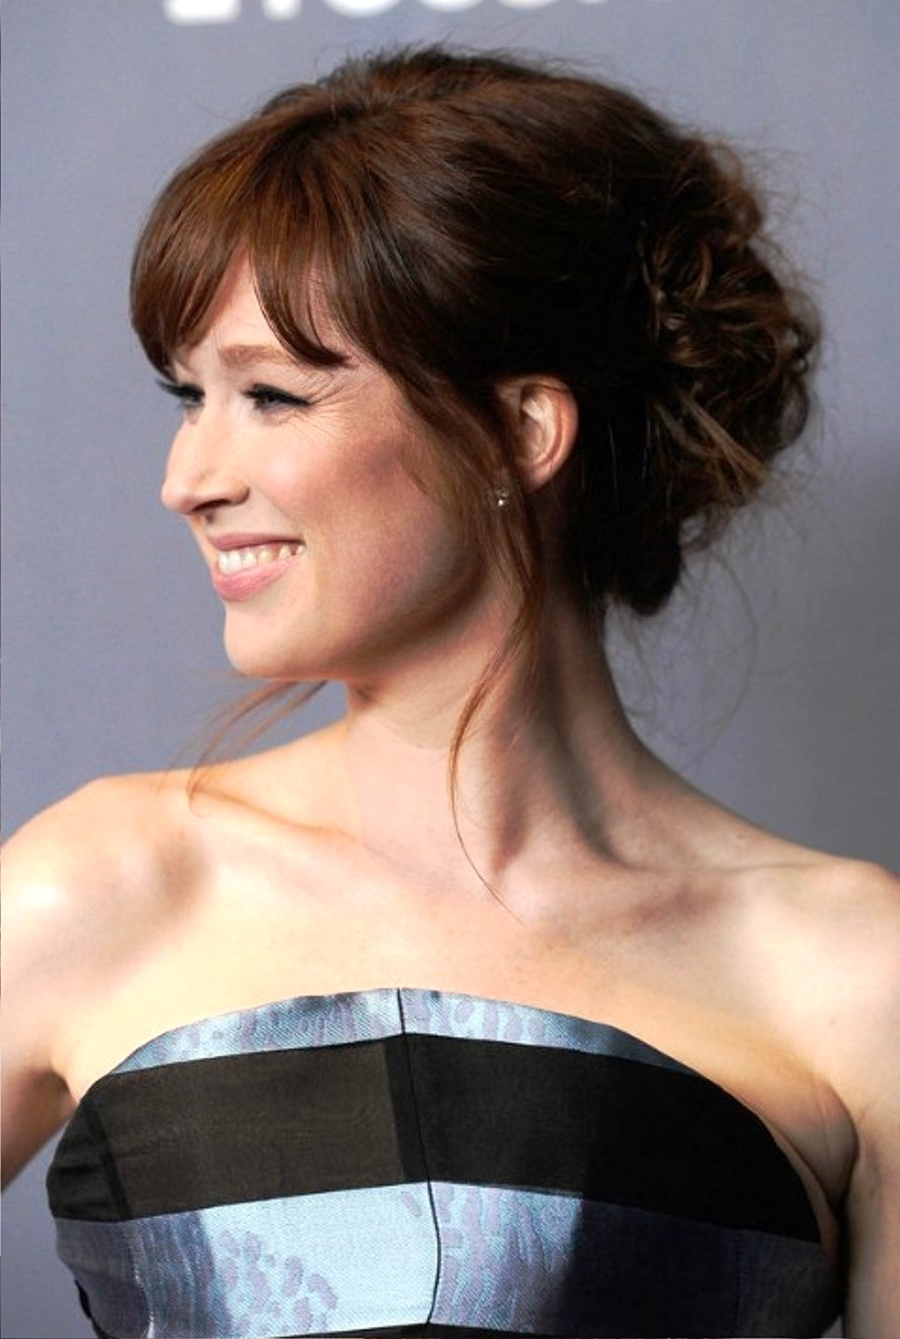 Pictures Of Ellie Kemper Cute Updo Hairstyle With Bangs With Regard To Updo Hairstyles With Bangs (View 10 of 15)